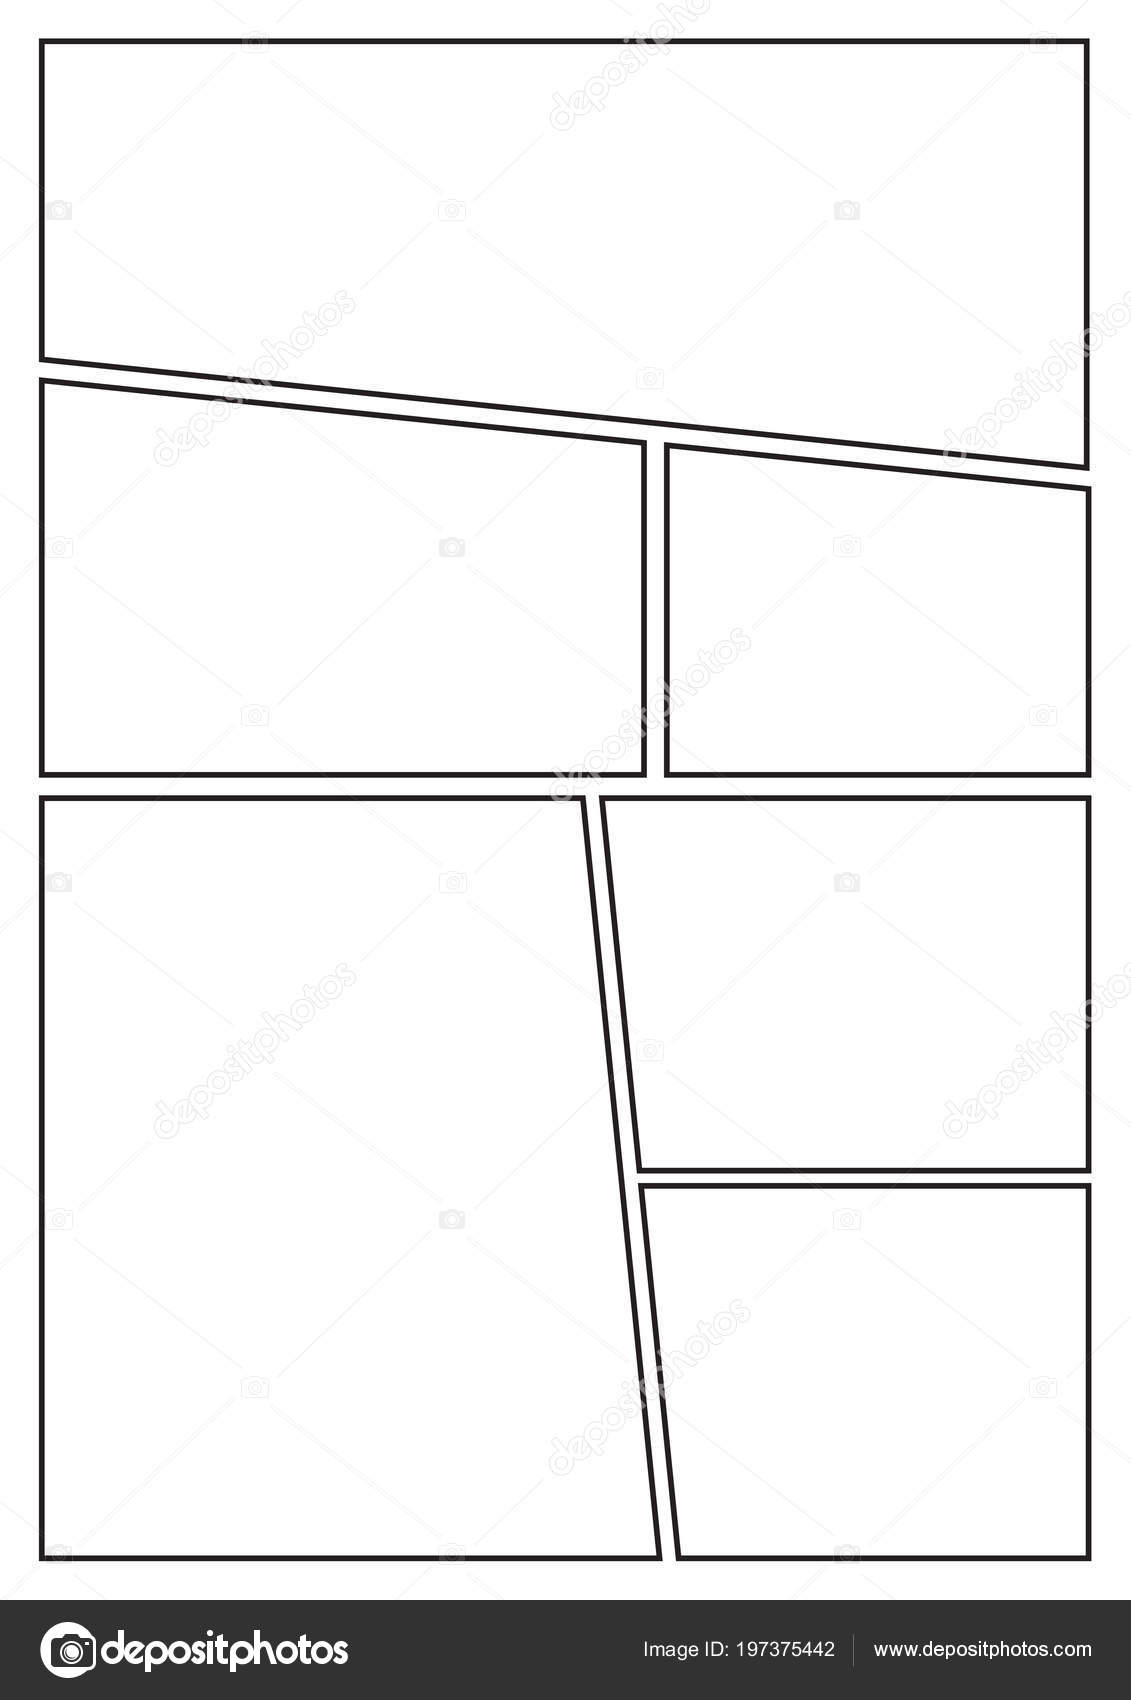 Manga Storyboard Layout Template Rapidly Create Comic Book